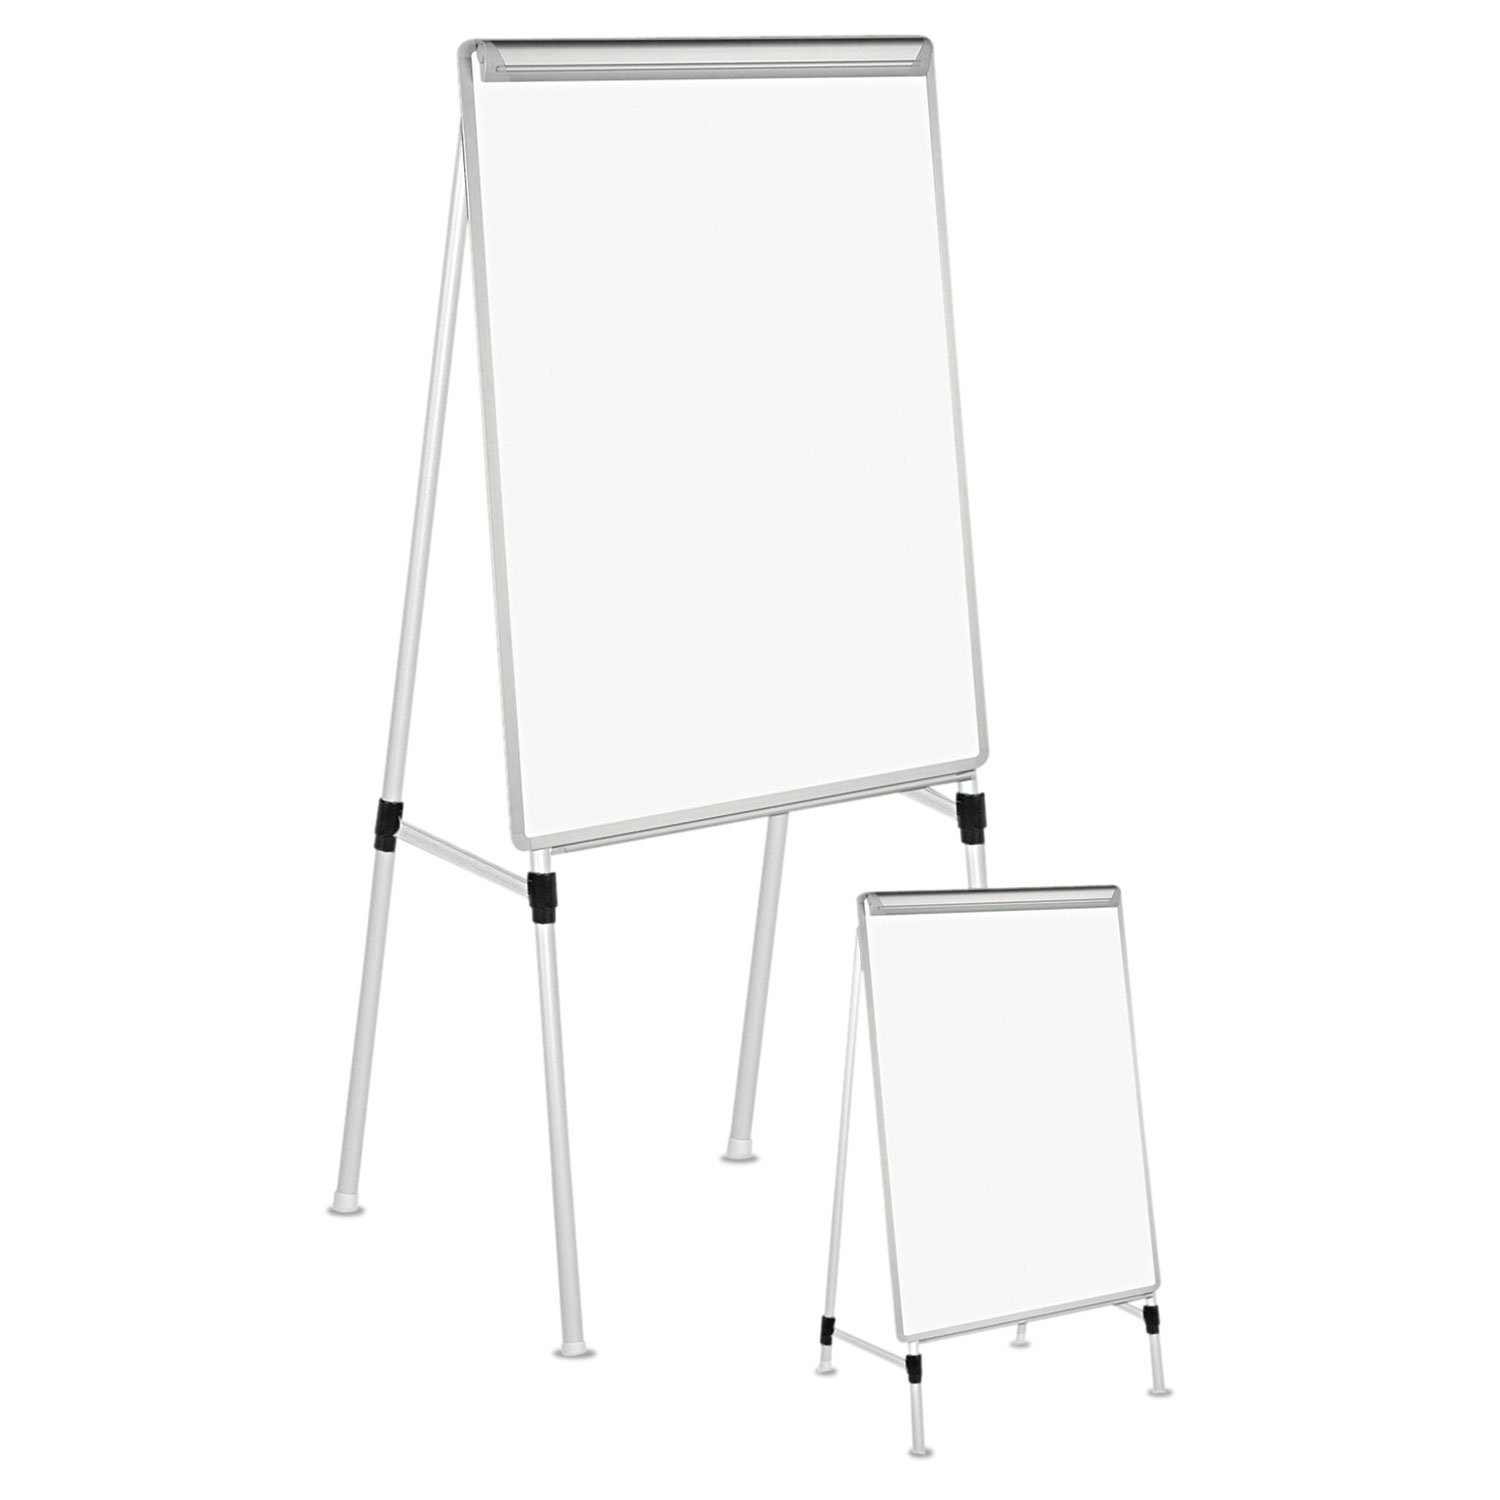 Universal 43033 Adjustable White Board Easel, 29 x 41, White/Silver by TableTop King